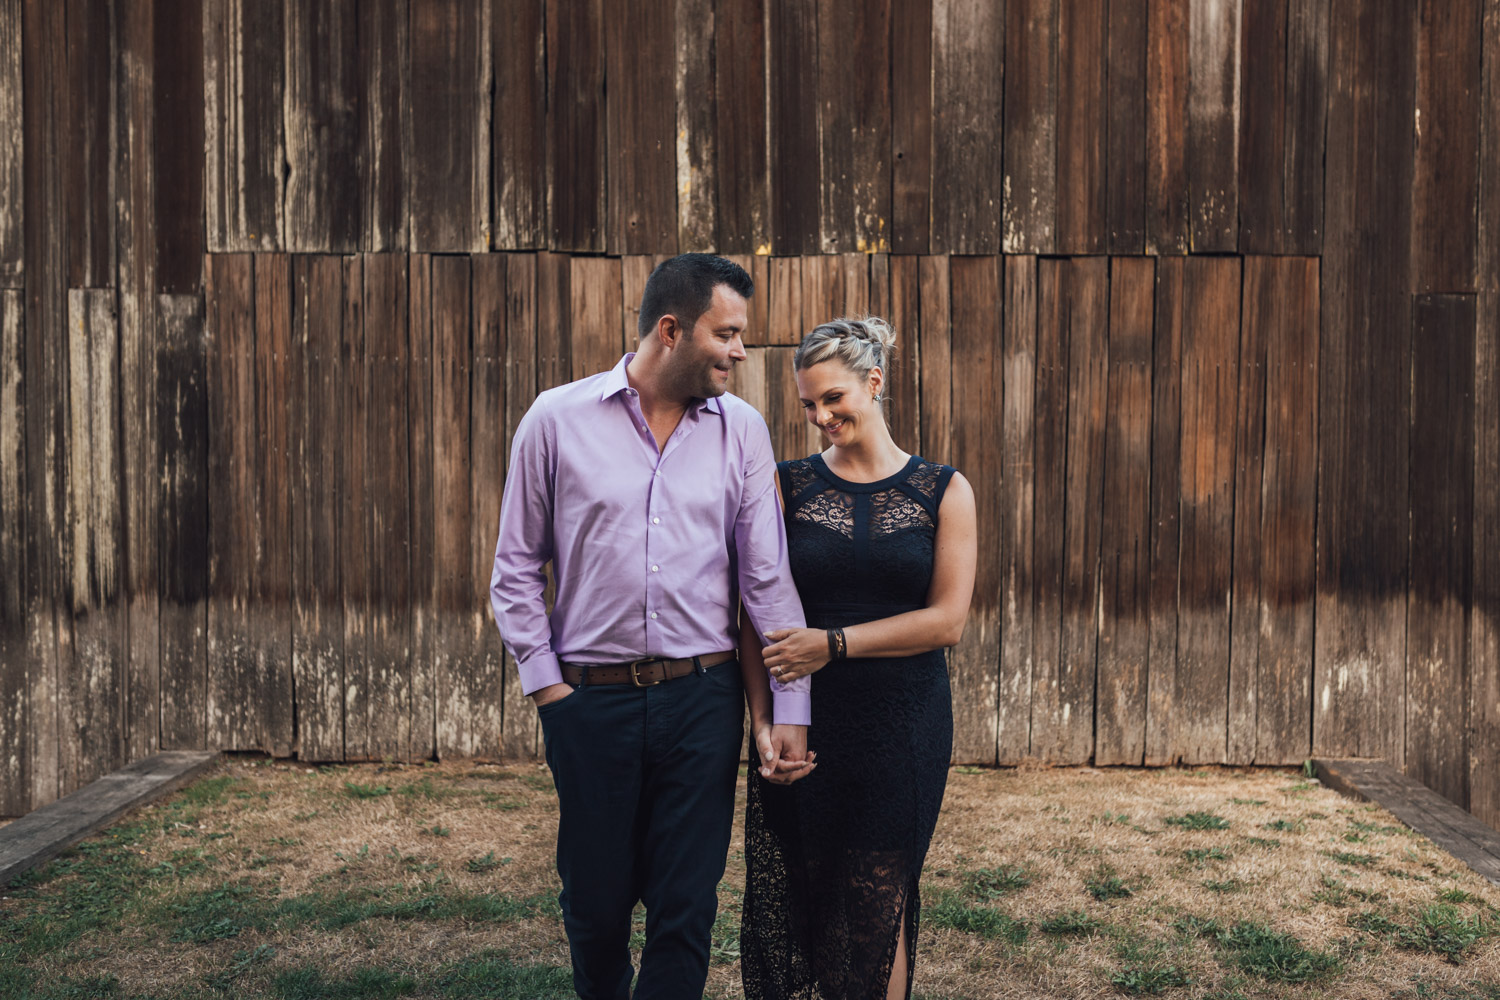 Engagement photography at Campbell Valley Park in Langley, BC